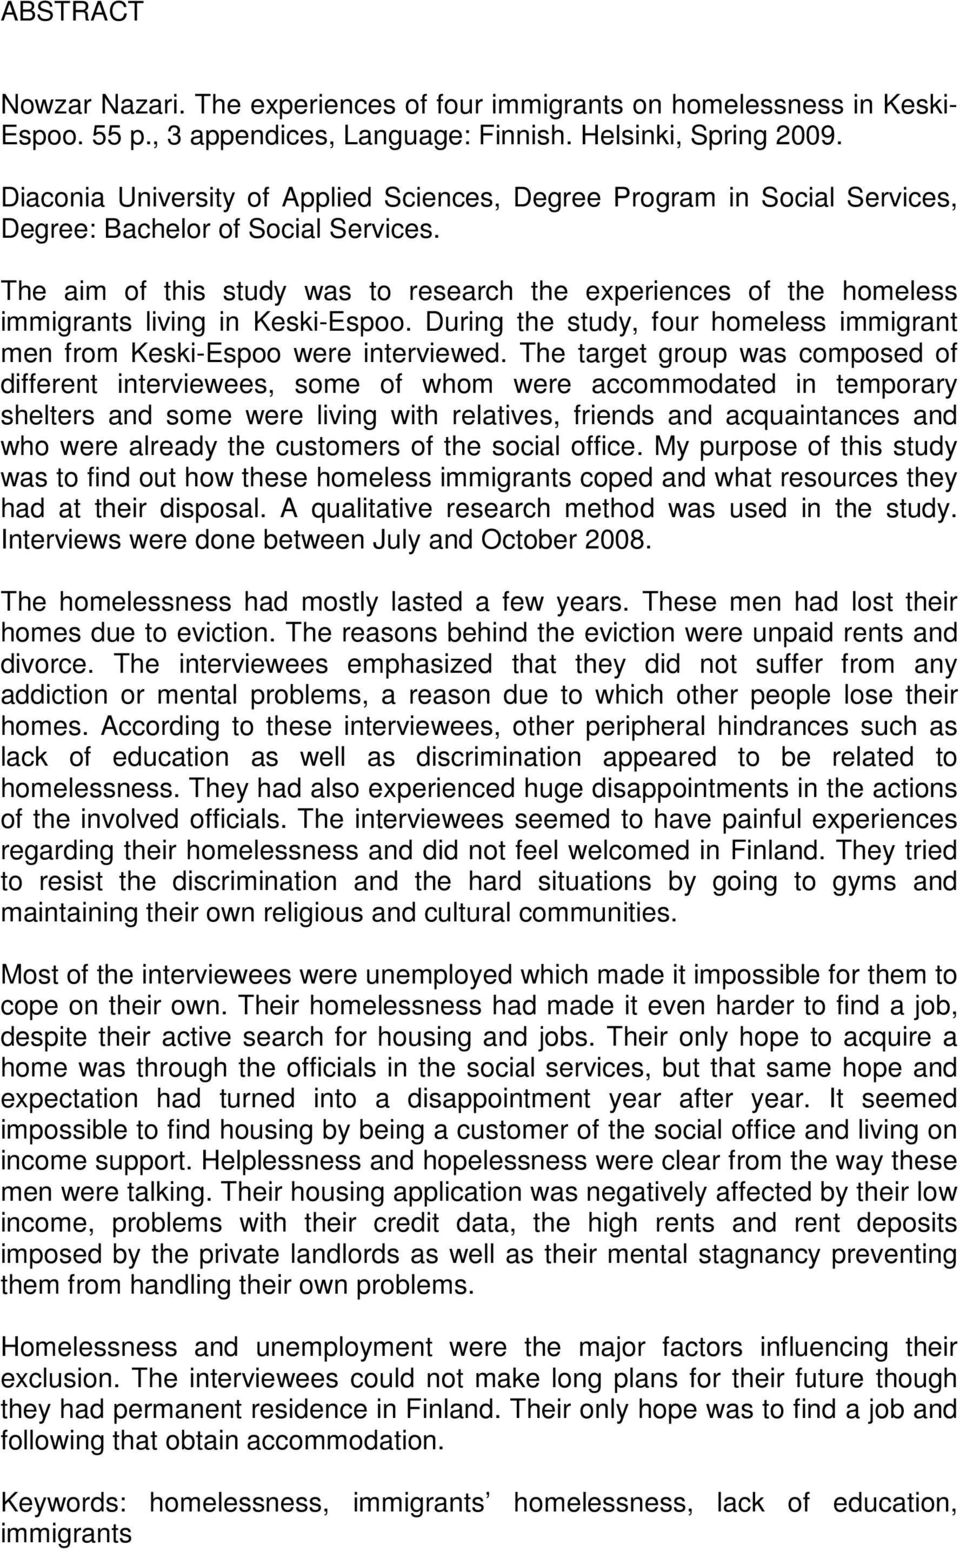 The aim of this study was to research the experiences of the homeless immigrants living in Keski-Espoo. During the study, four homeless immigrant men from Keski-Espoo were interviewed.